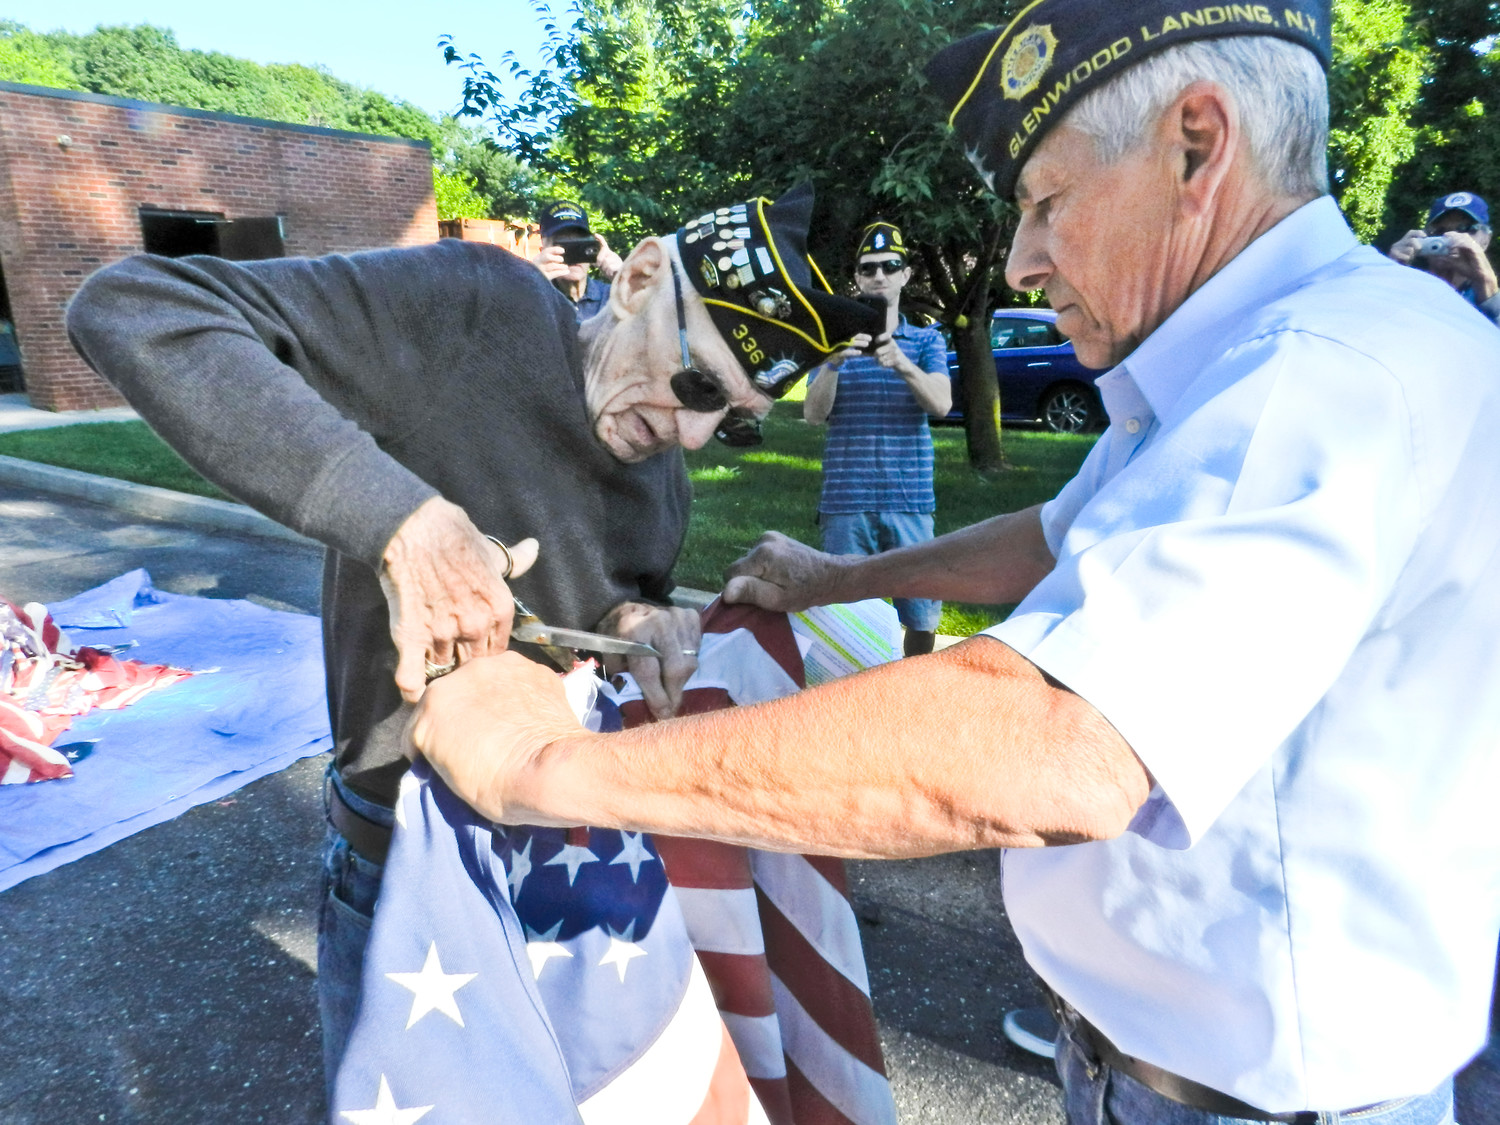 Veteran Richard Hartney, left, of Sea Cliff, cut the stars from an American flag during the American Legion's annual flag burning ceremony last Saturday, assisted by Post 336 Commander William Laderer.